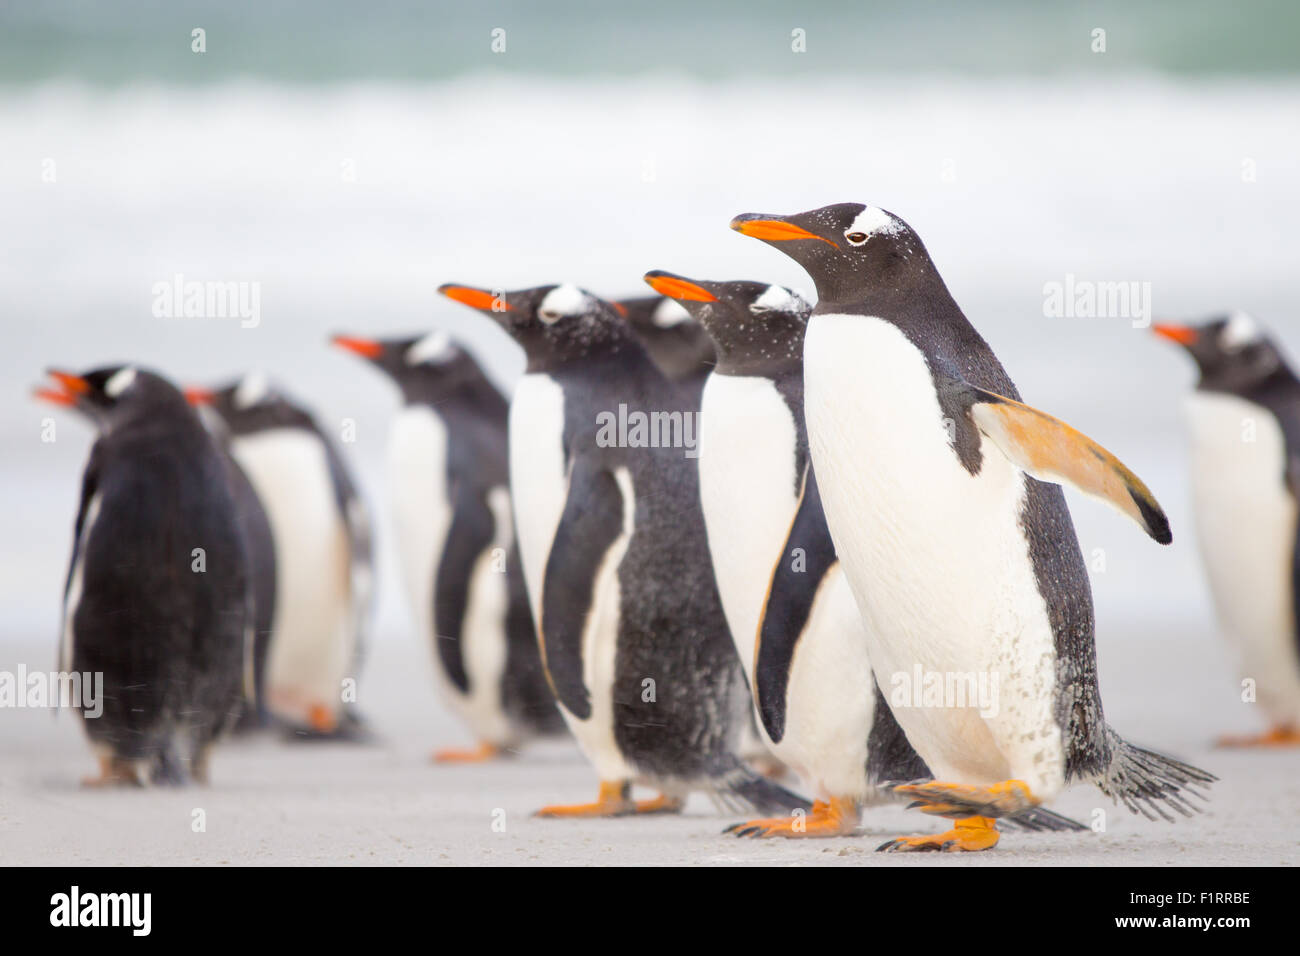 Penguins on the beach with azure sea in background. Falkland Islands. - Stock Image